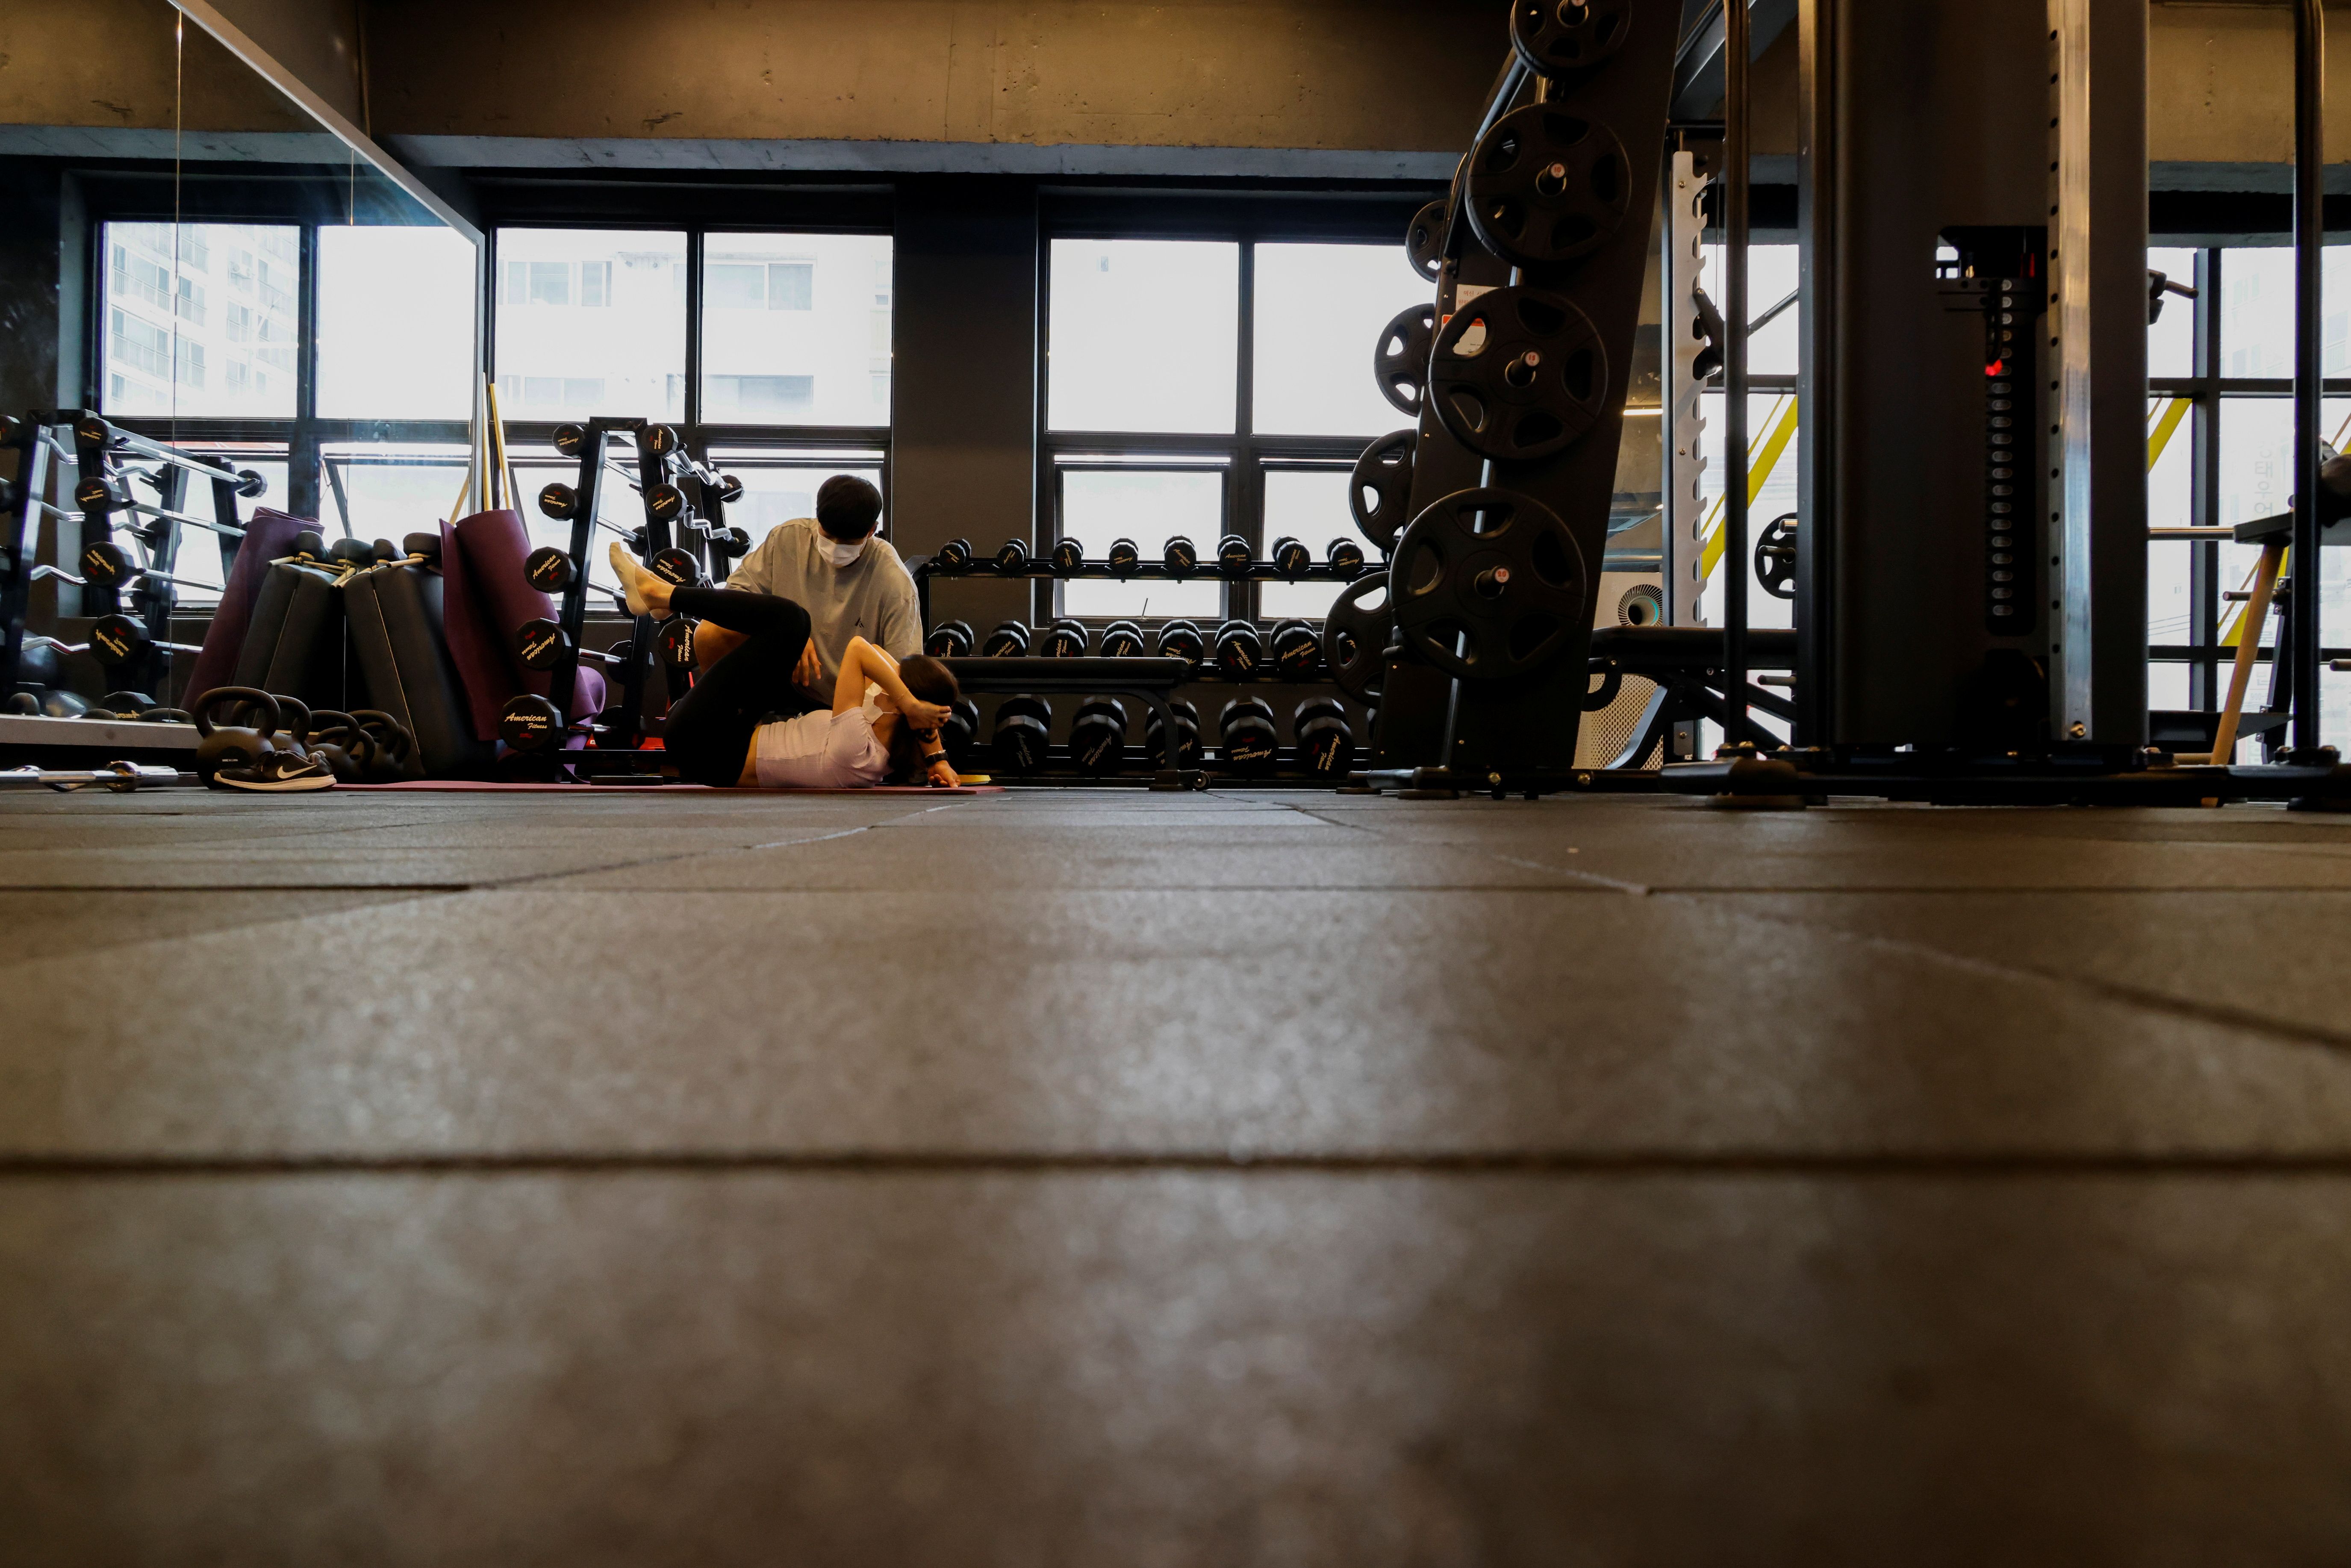 A gym member trains in a fitness club amid the coronavirus disease (COVID-19) pandemic in Seoul, South Korea, July 12, 2021. REUTERS/Heo Ran